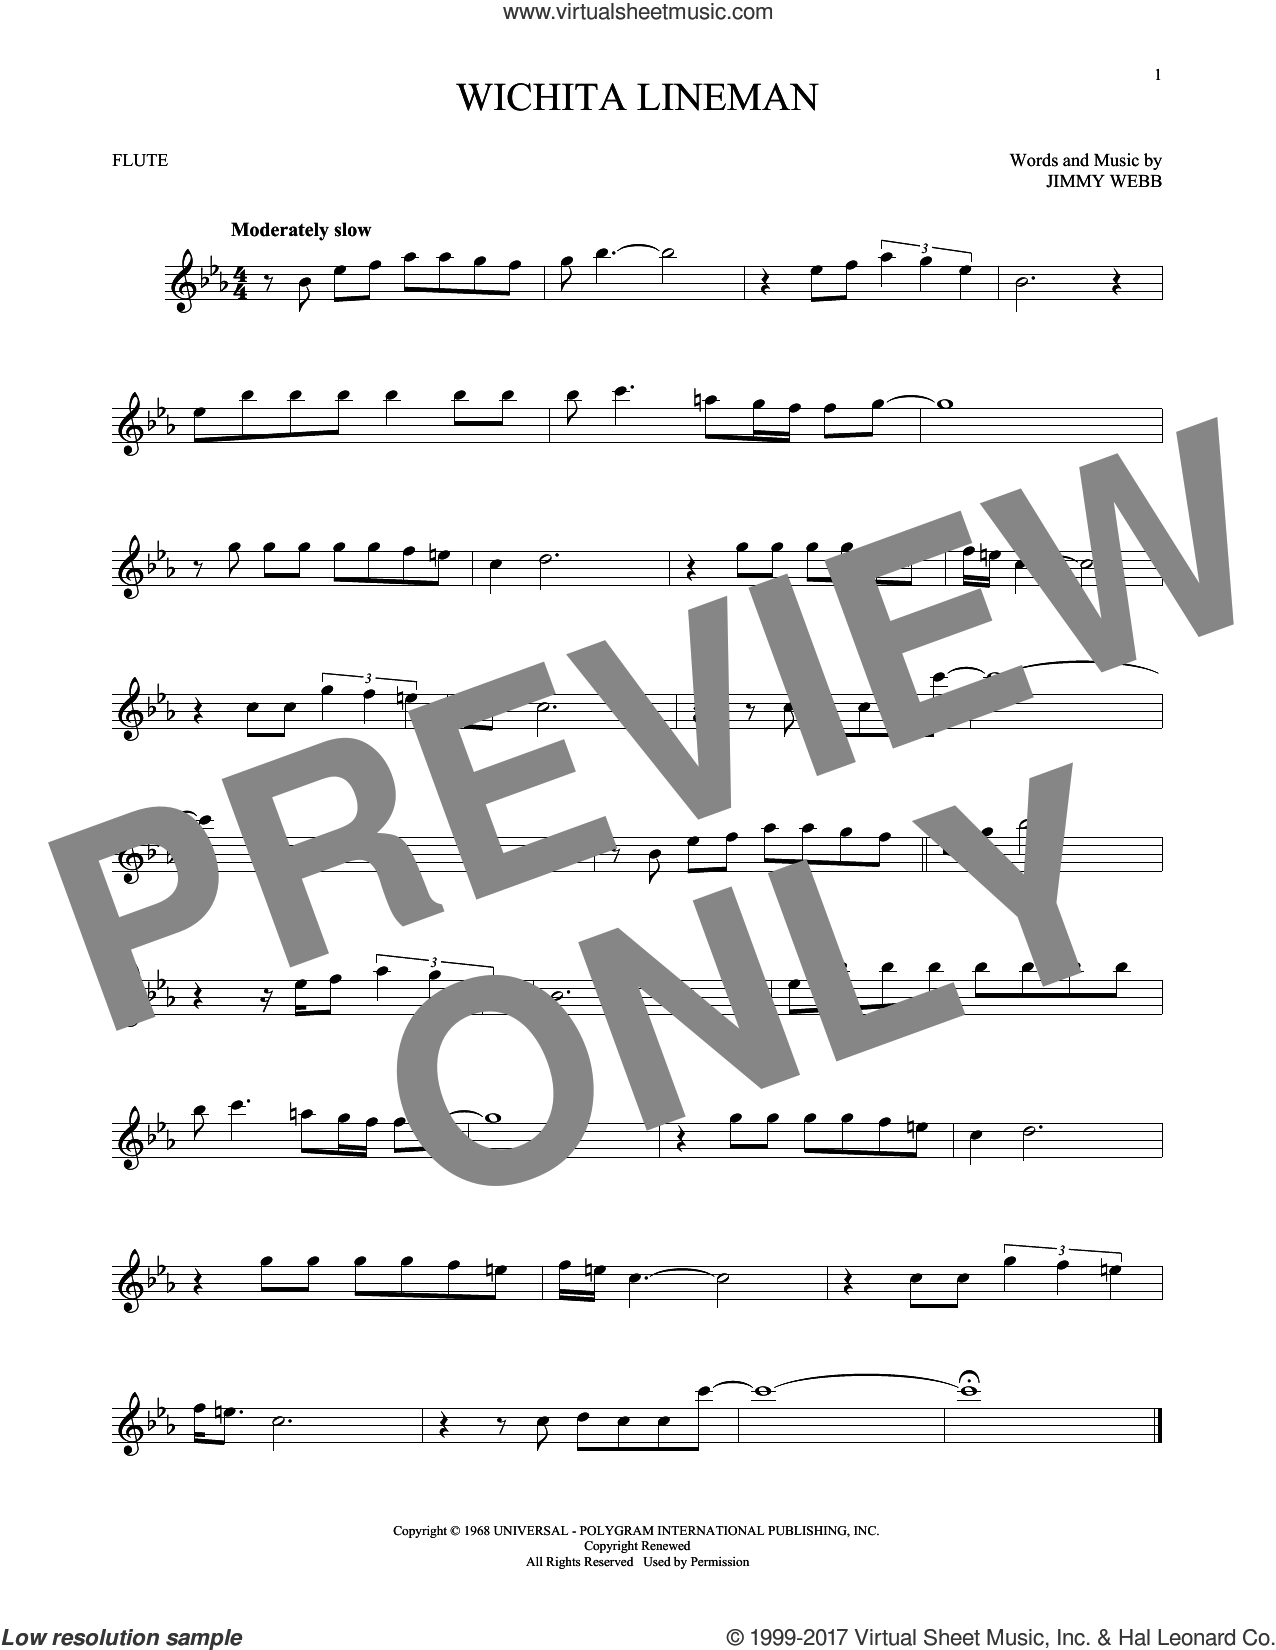 Wichita Lineman sheet music for flute solo by Glen Campbell and Jimmy Webb, intermediate skill level